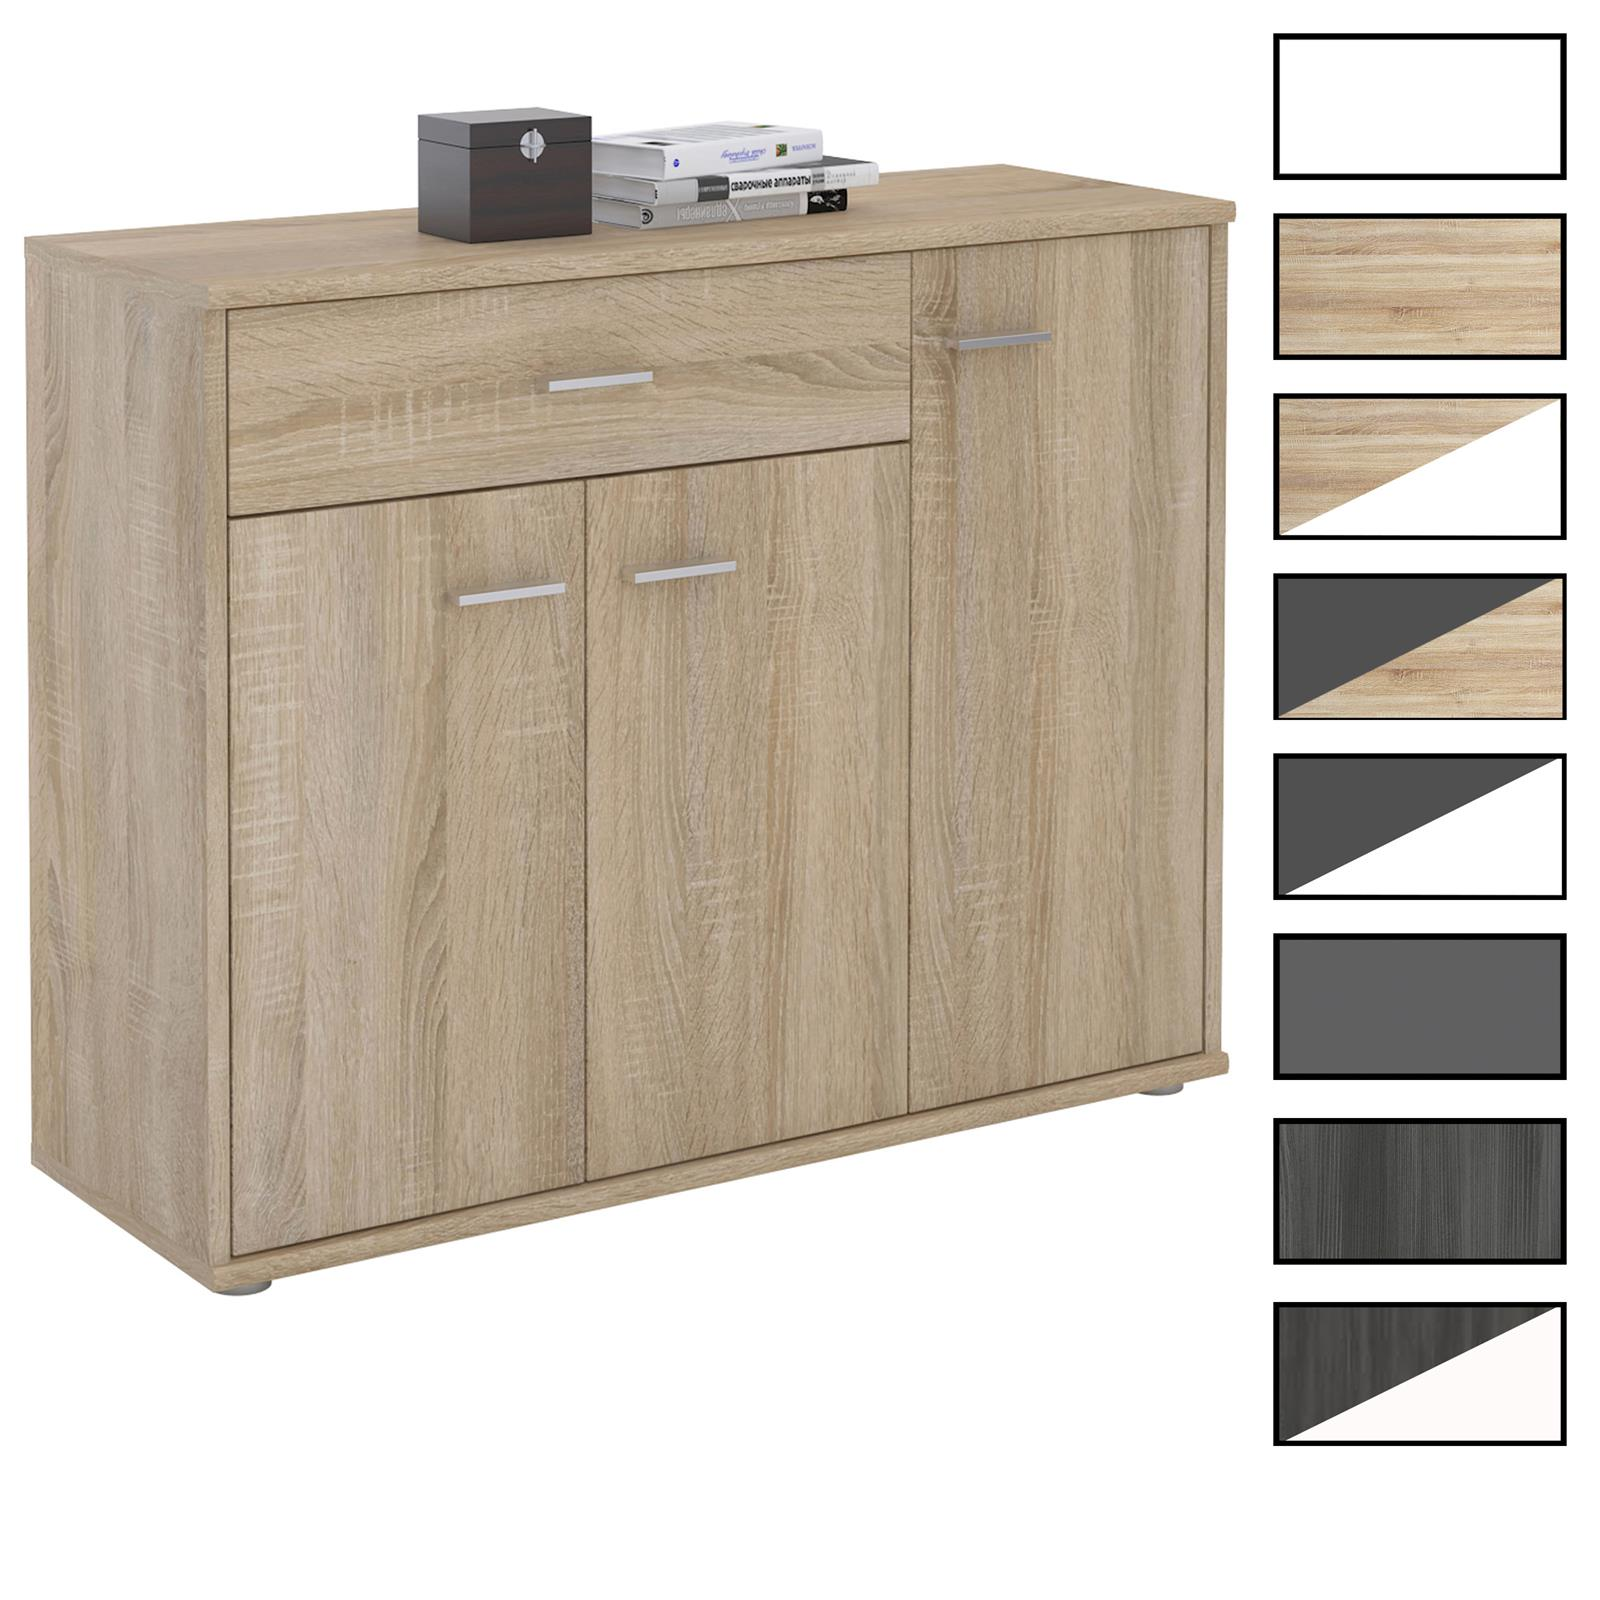 kommode sideboard mehrzweckschrank 3 t ren und 1 schublade 88 cm breit eur 62 95 picclick de. Black Bedroom Furniture Sets. Home Design Ideas